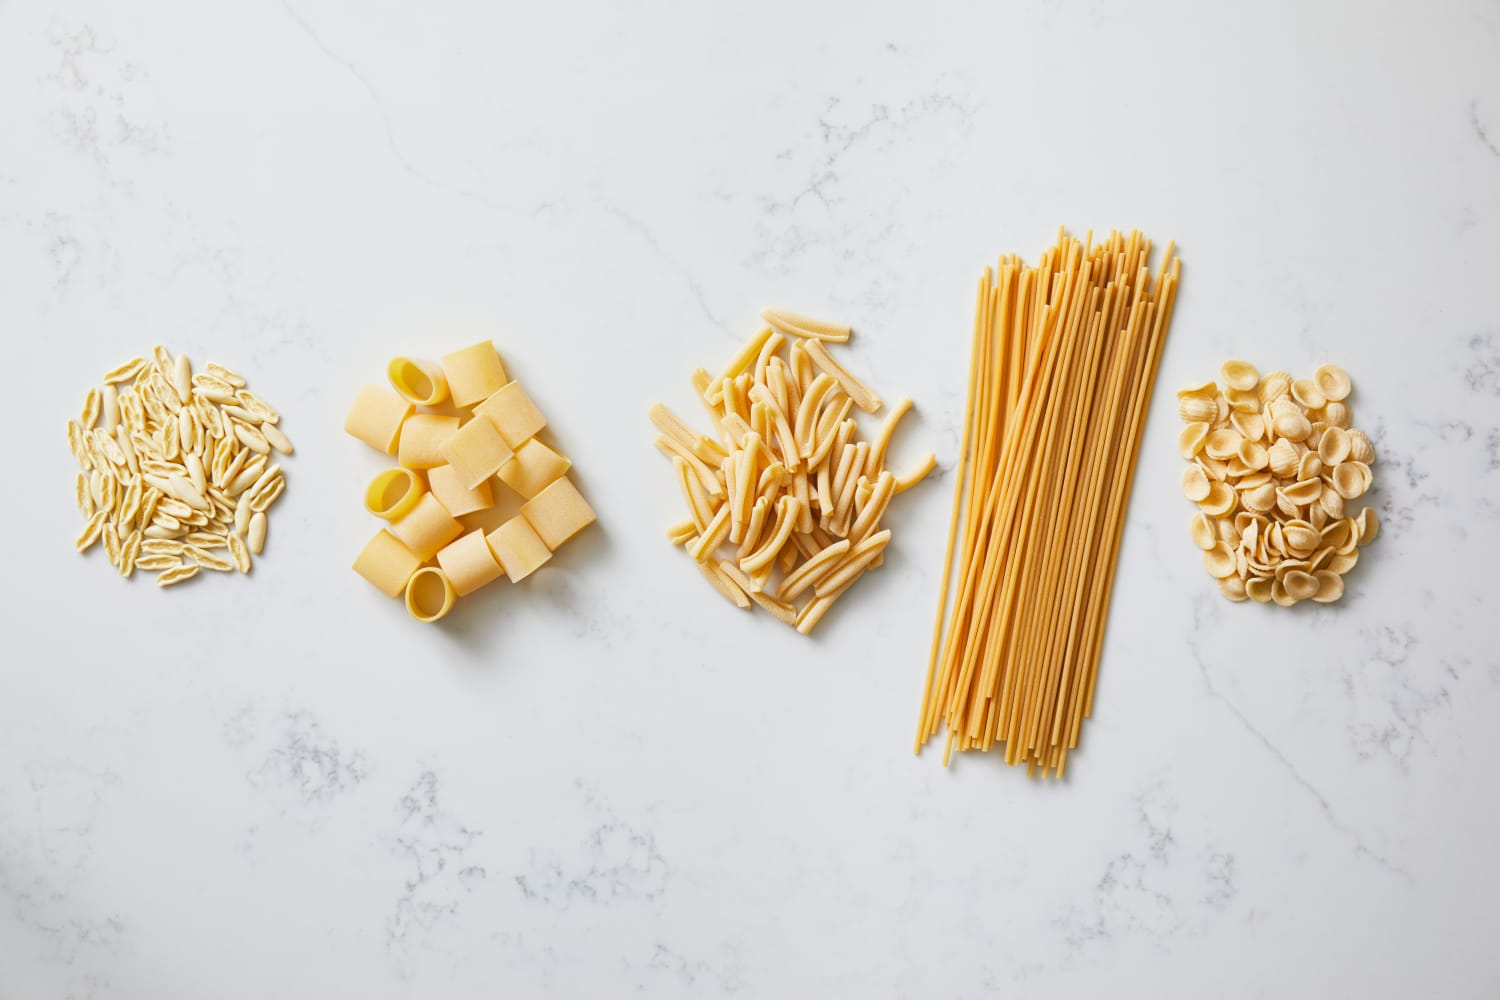 5 Pastas That Instantly Fancy Up Weeknight Dinner